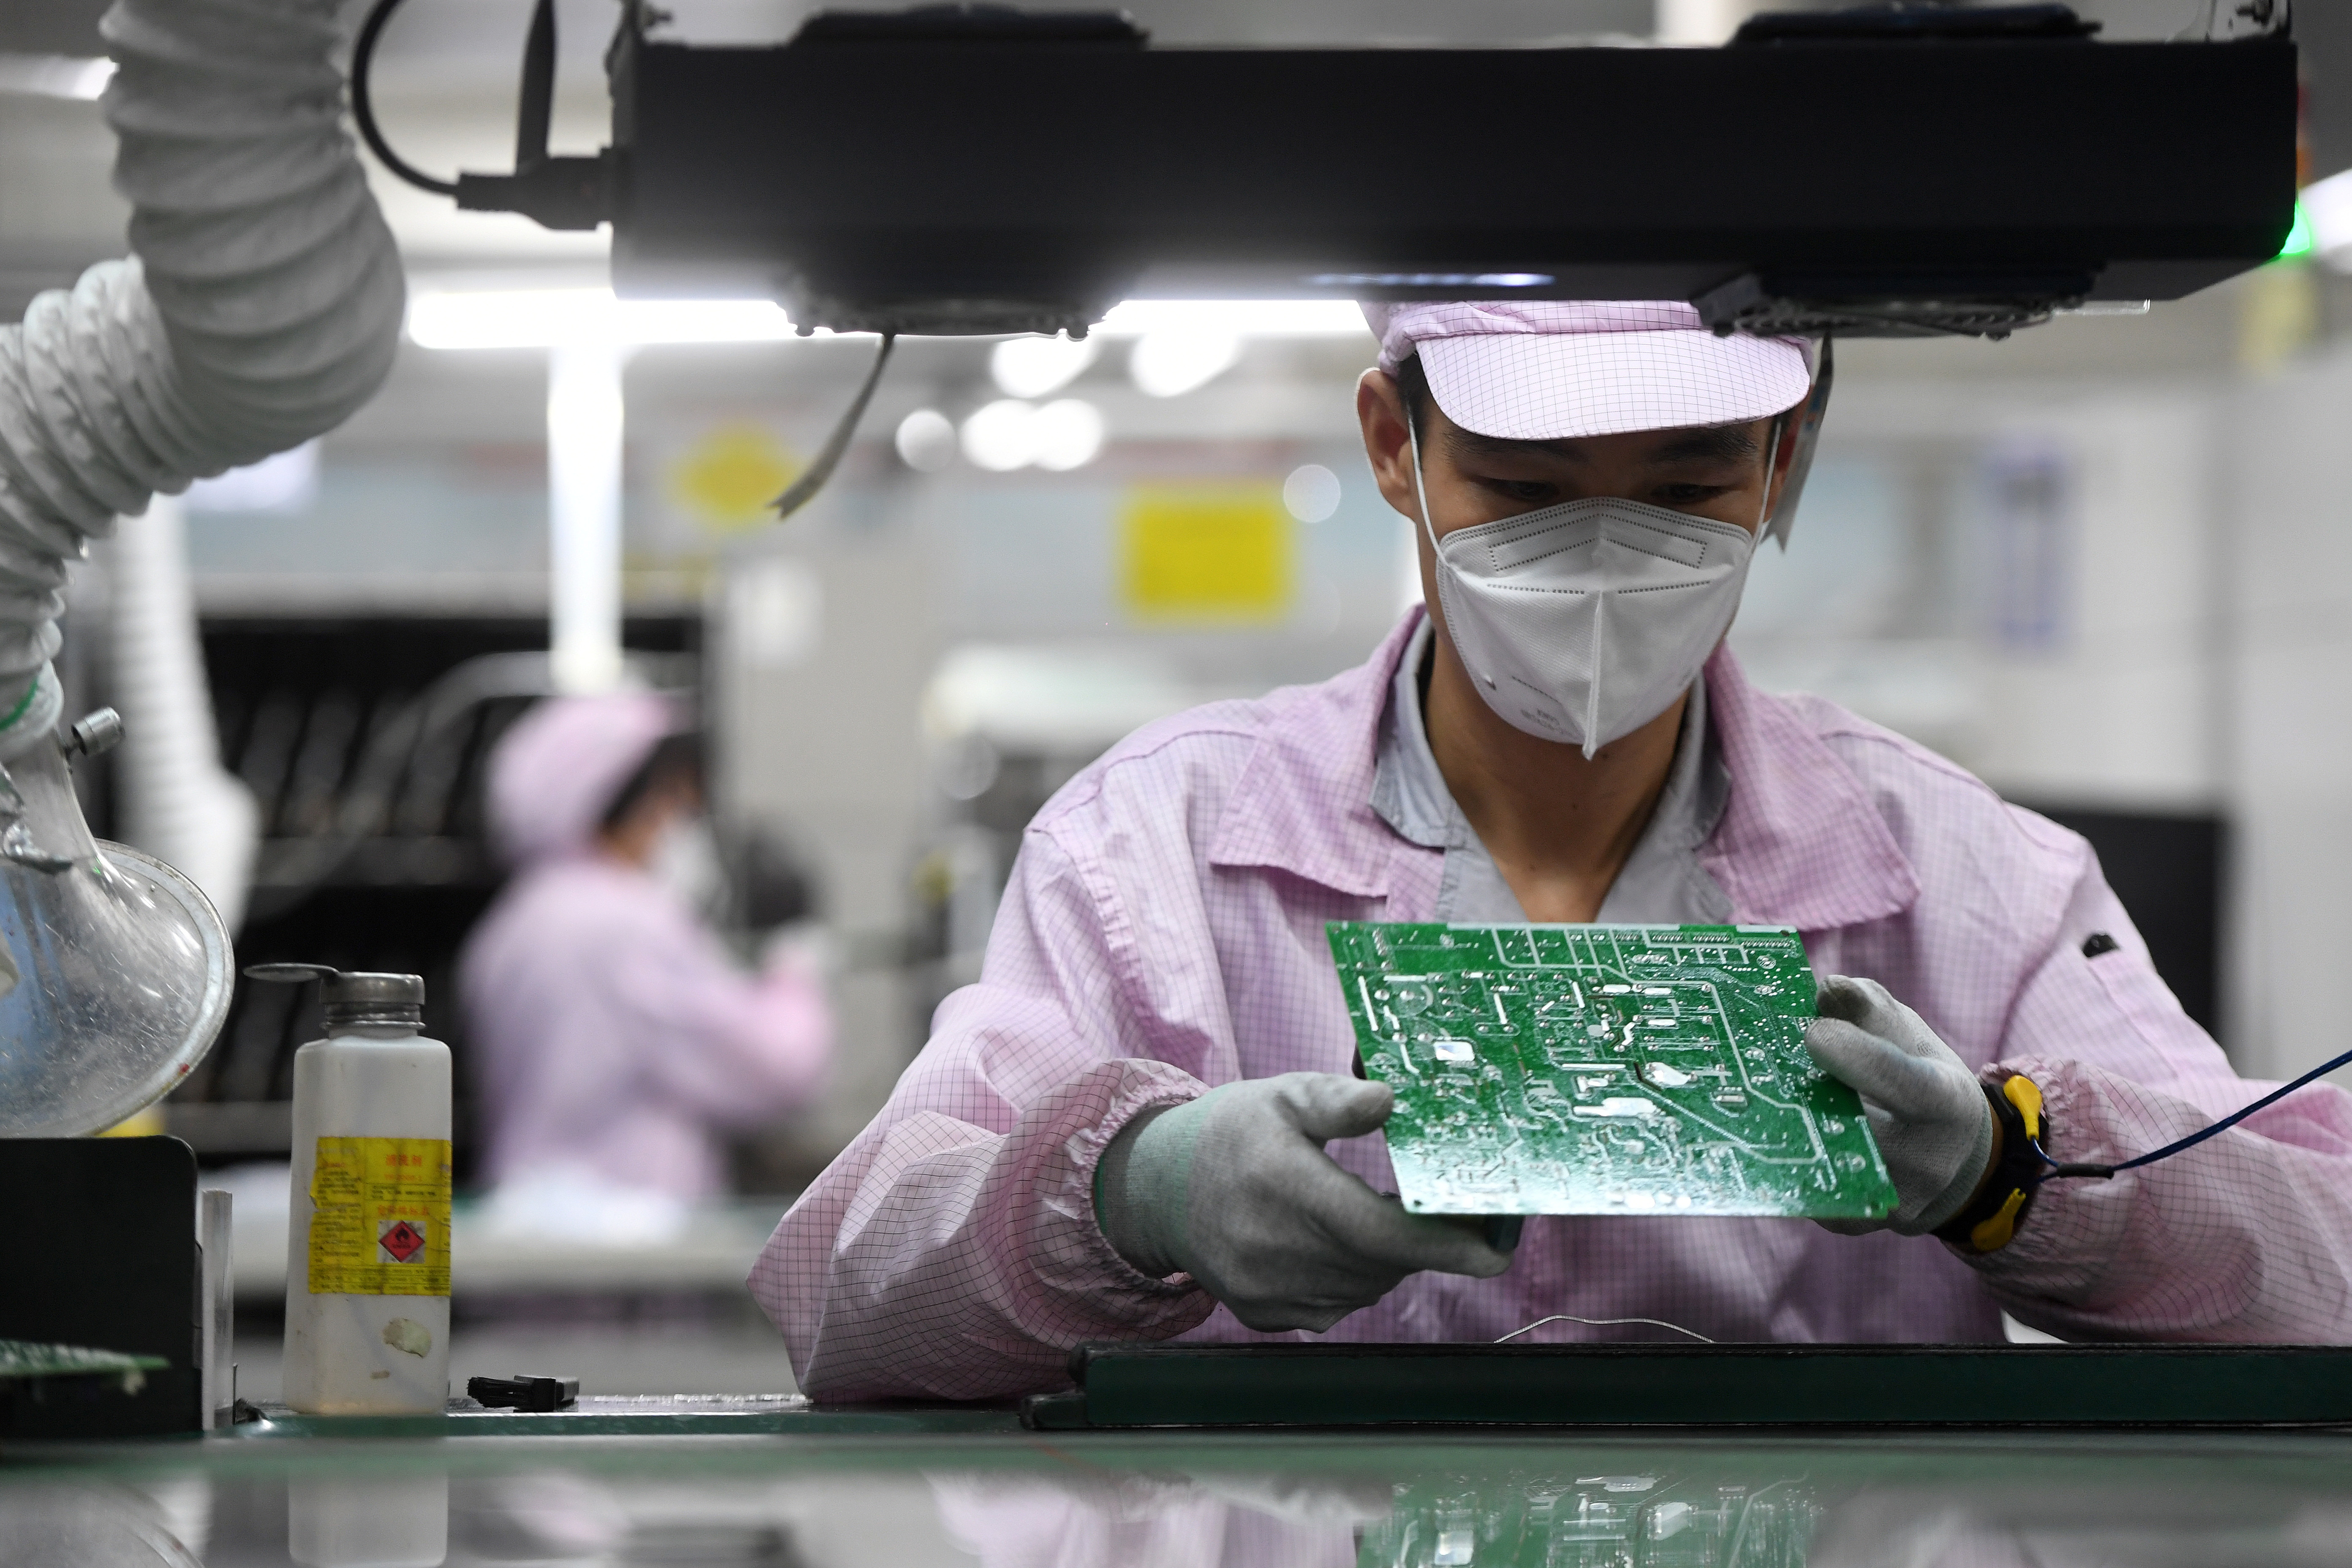 An employee inspects a circuit board on the controller production line at a Gree factory, following the coronavirus disease (COVID-19) outbreak in Wuhan, Hubei province, China August 16, 2021. China Daily via REUTERS